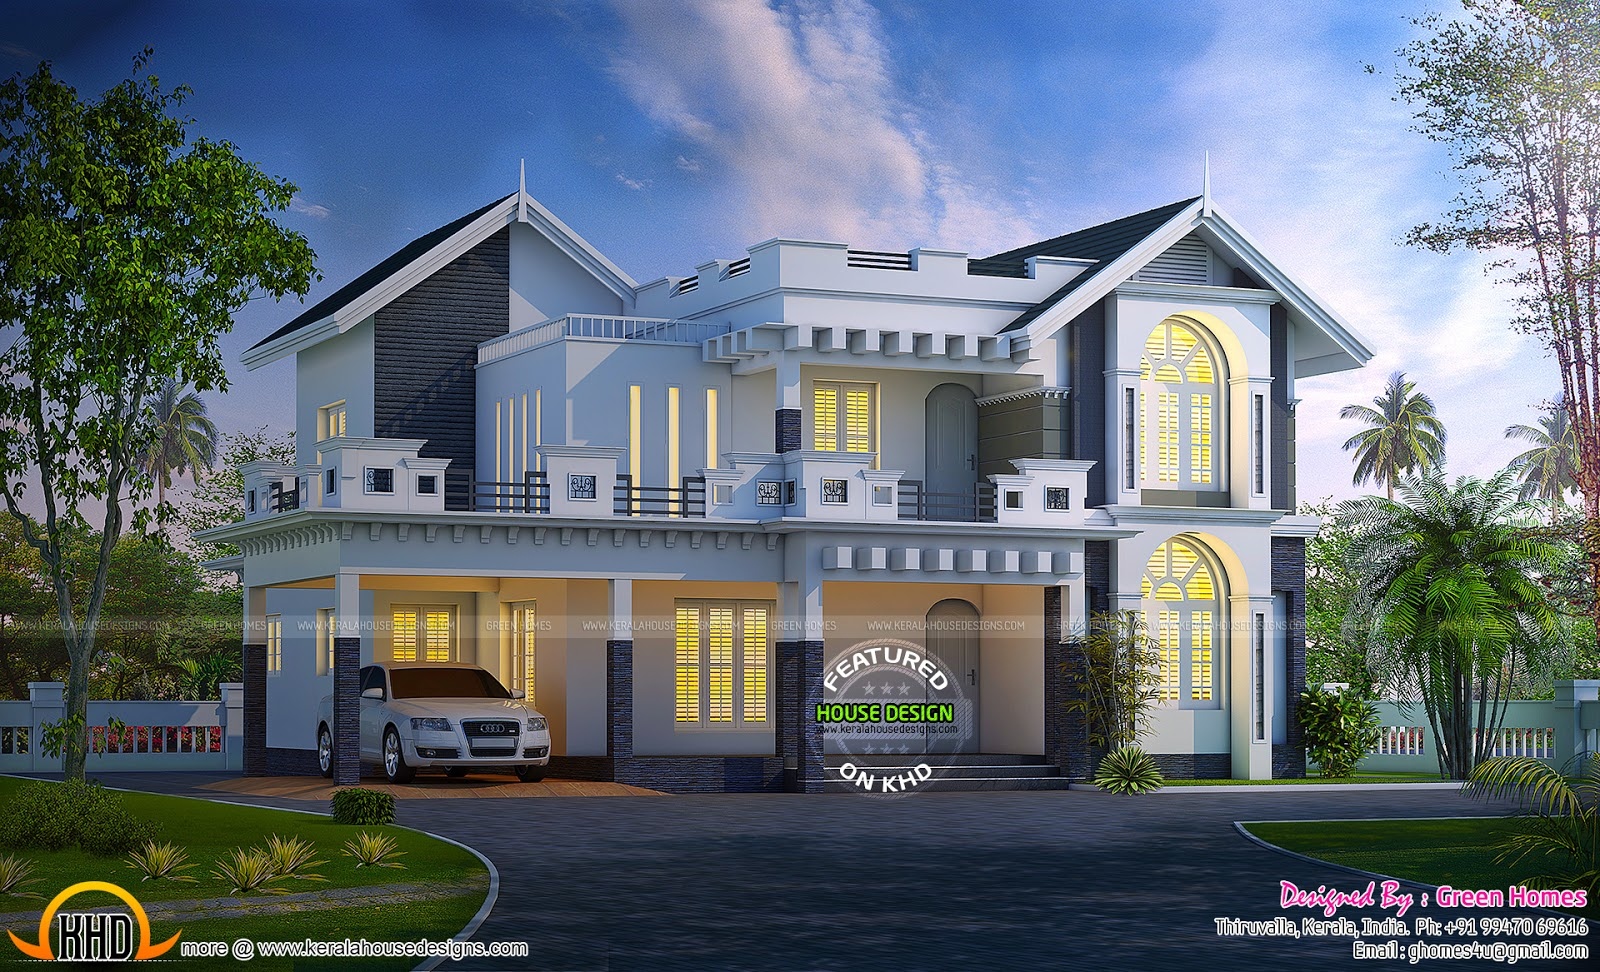 New kerala house plans for june 2015 keralahousedesigns for Kerala new house plans